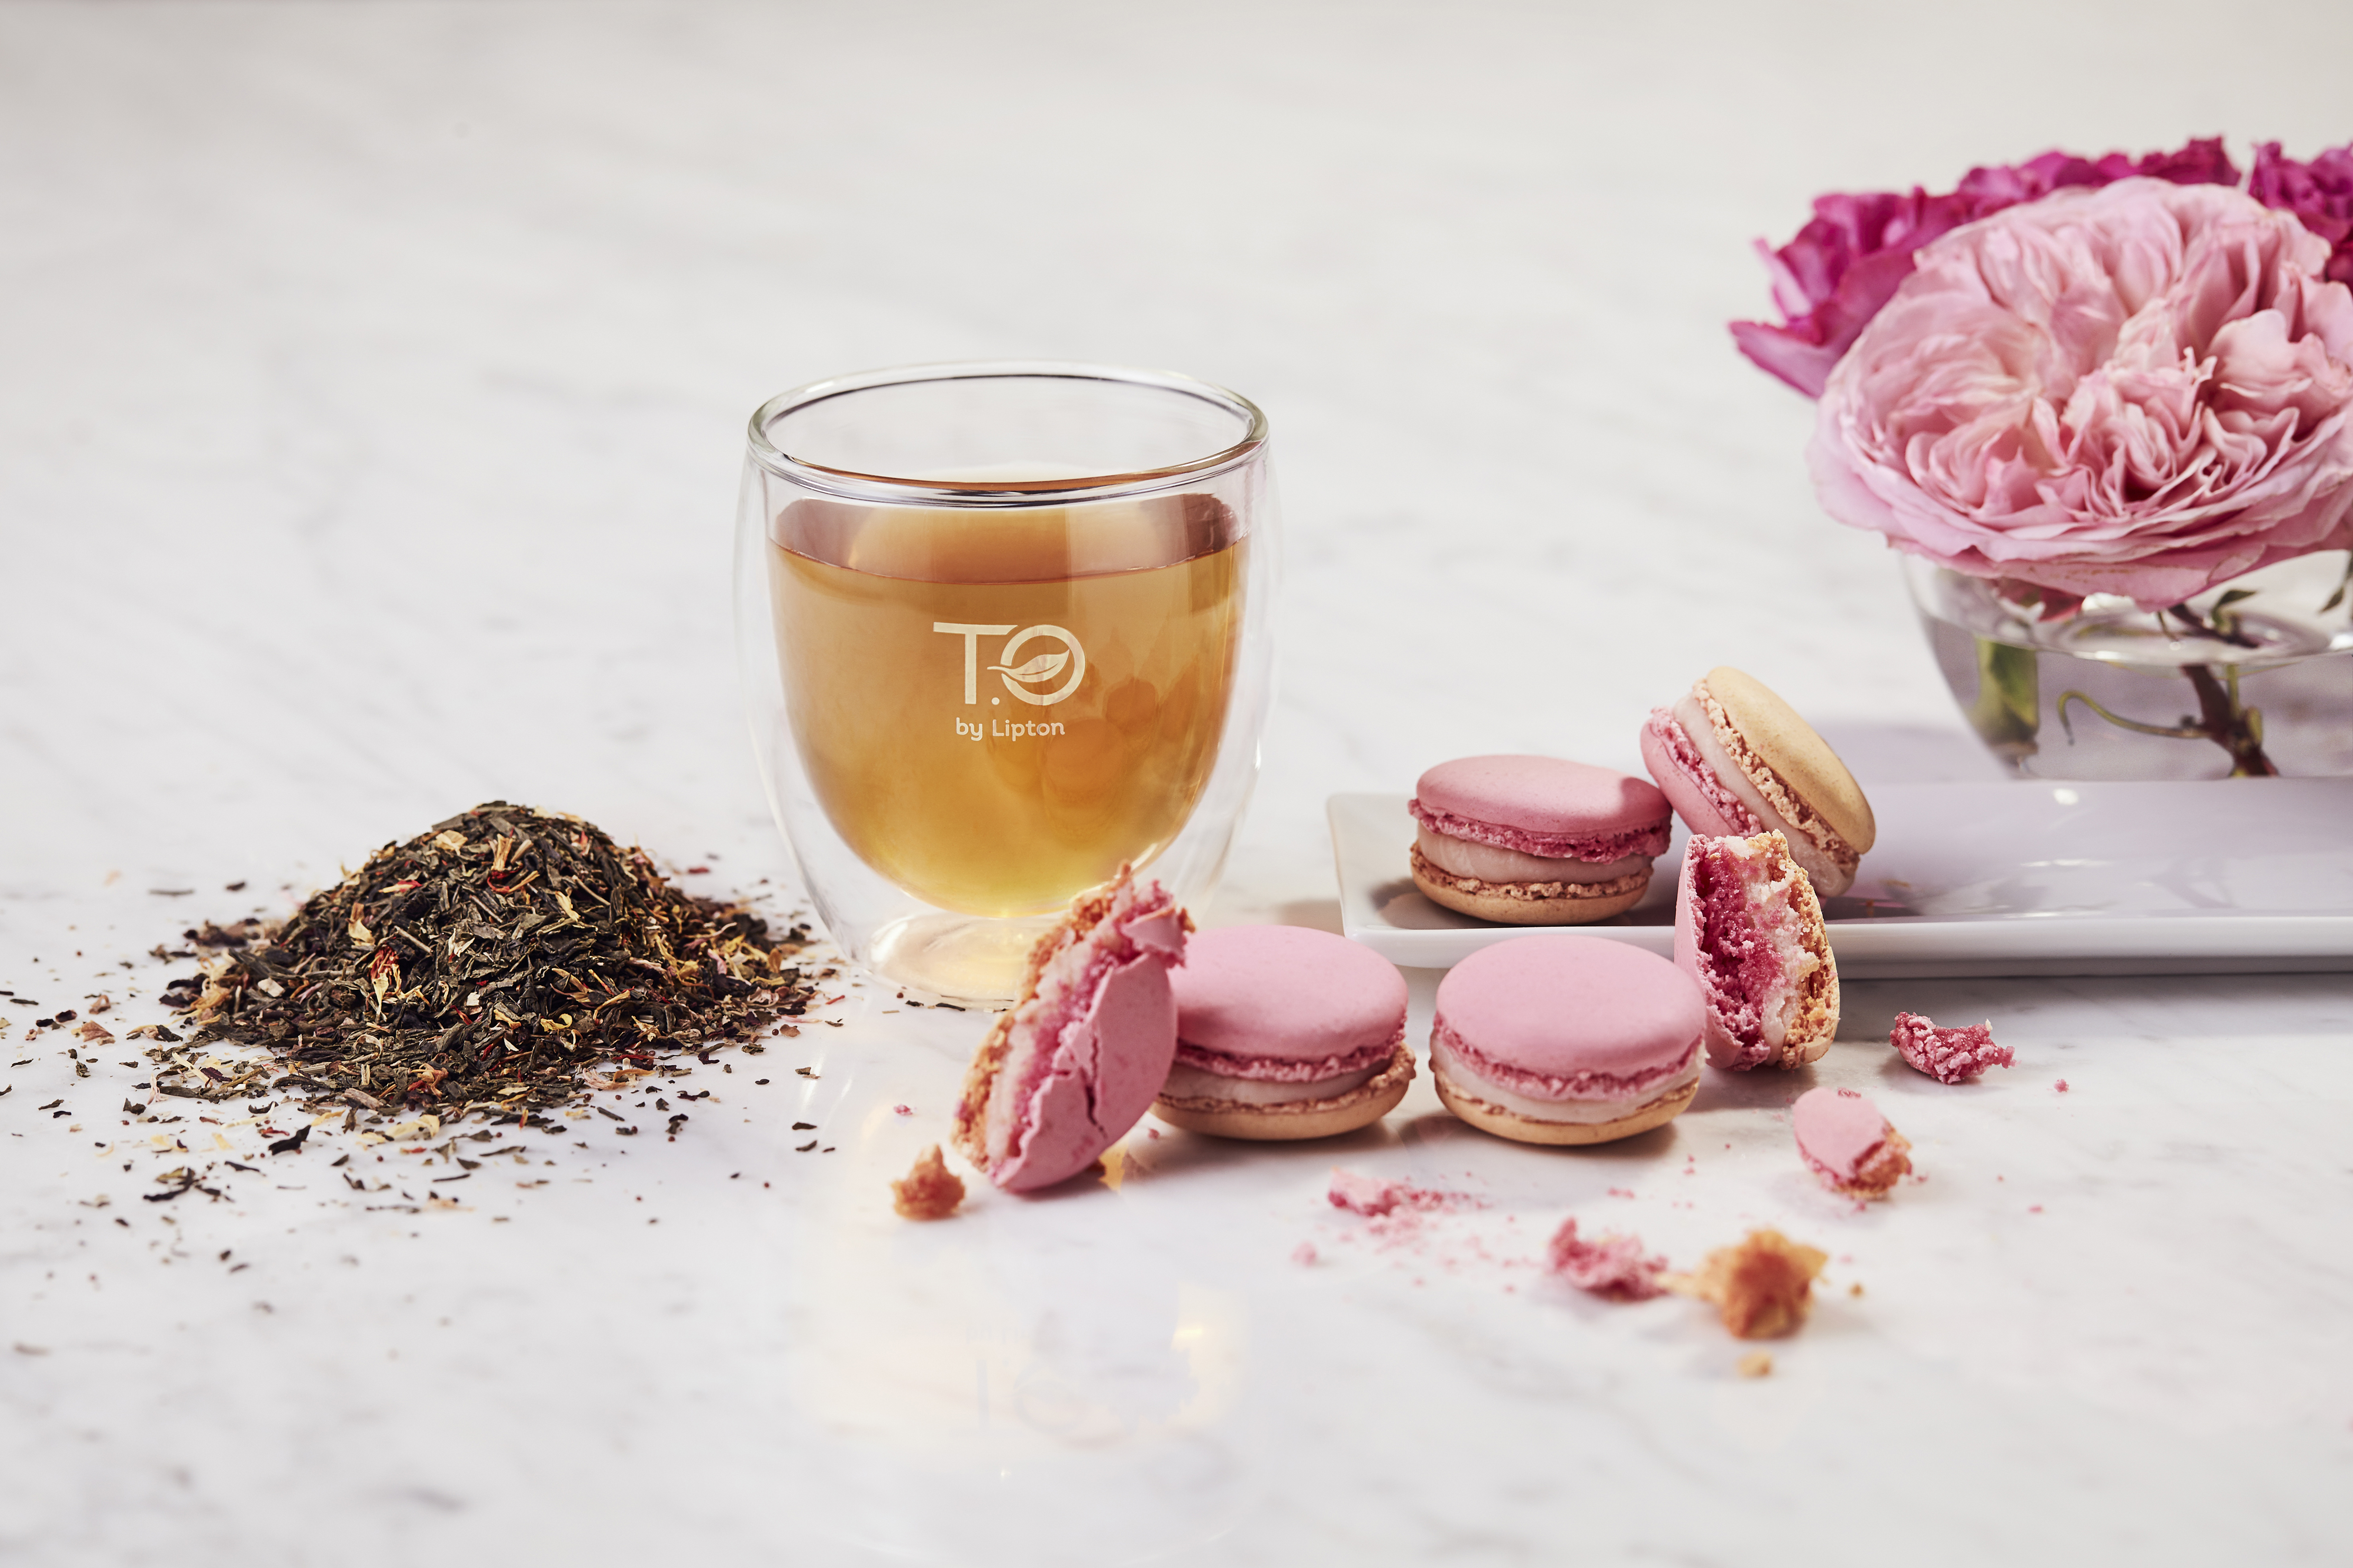 t-o-by-lipton-x-pierre-herme-visuel-ambiance-macaron-the